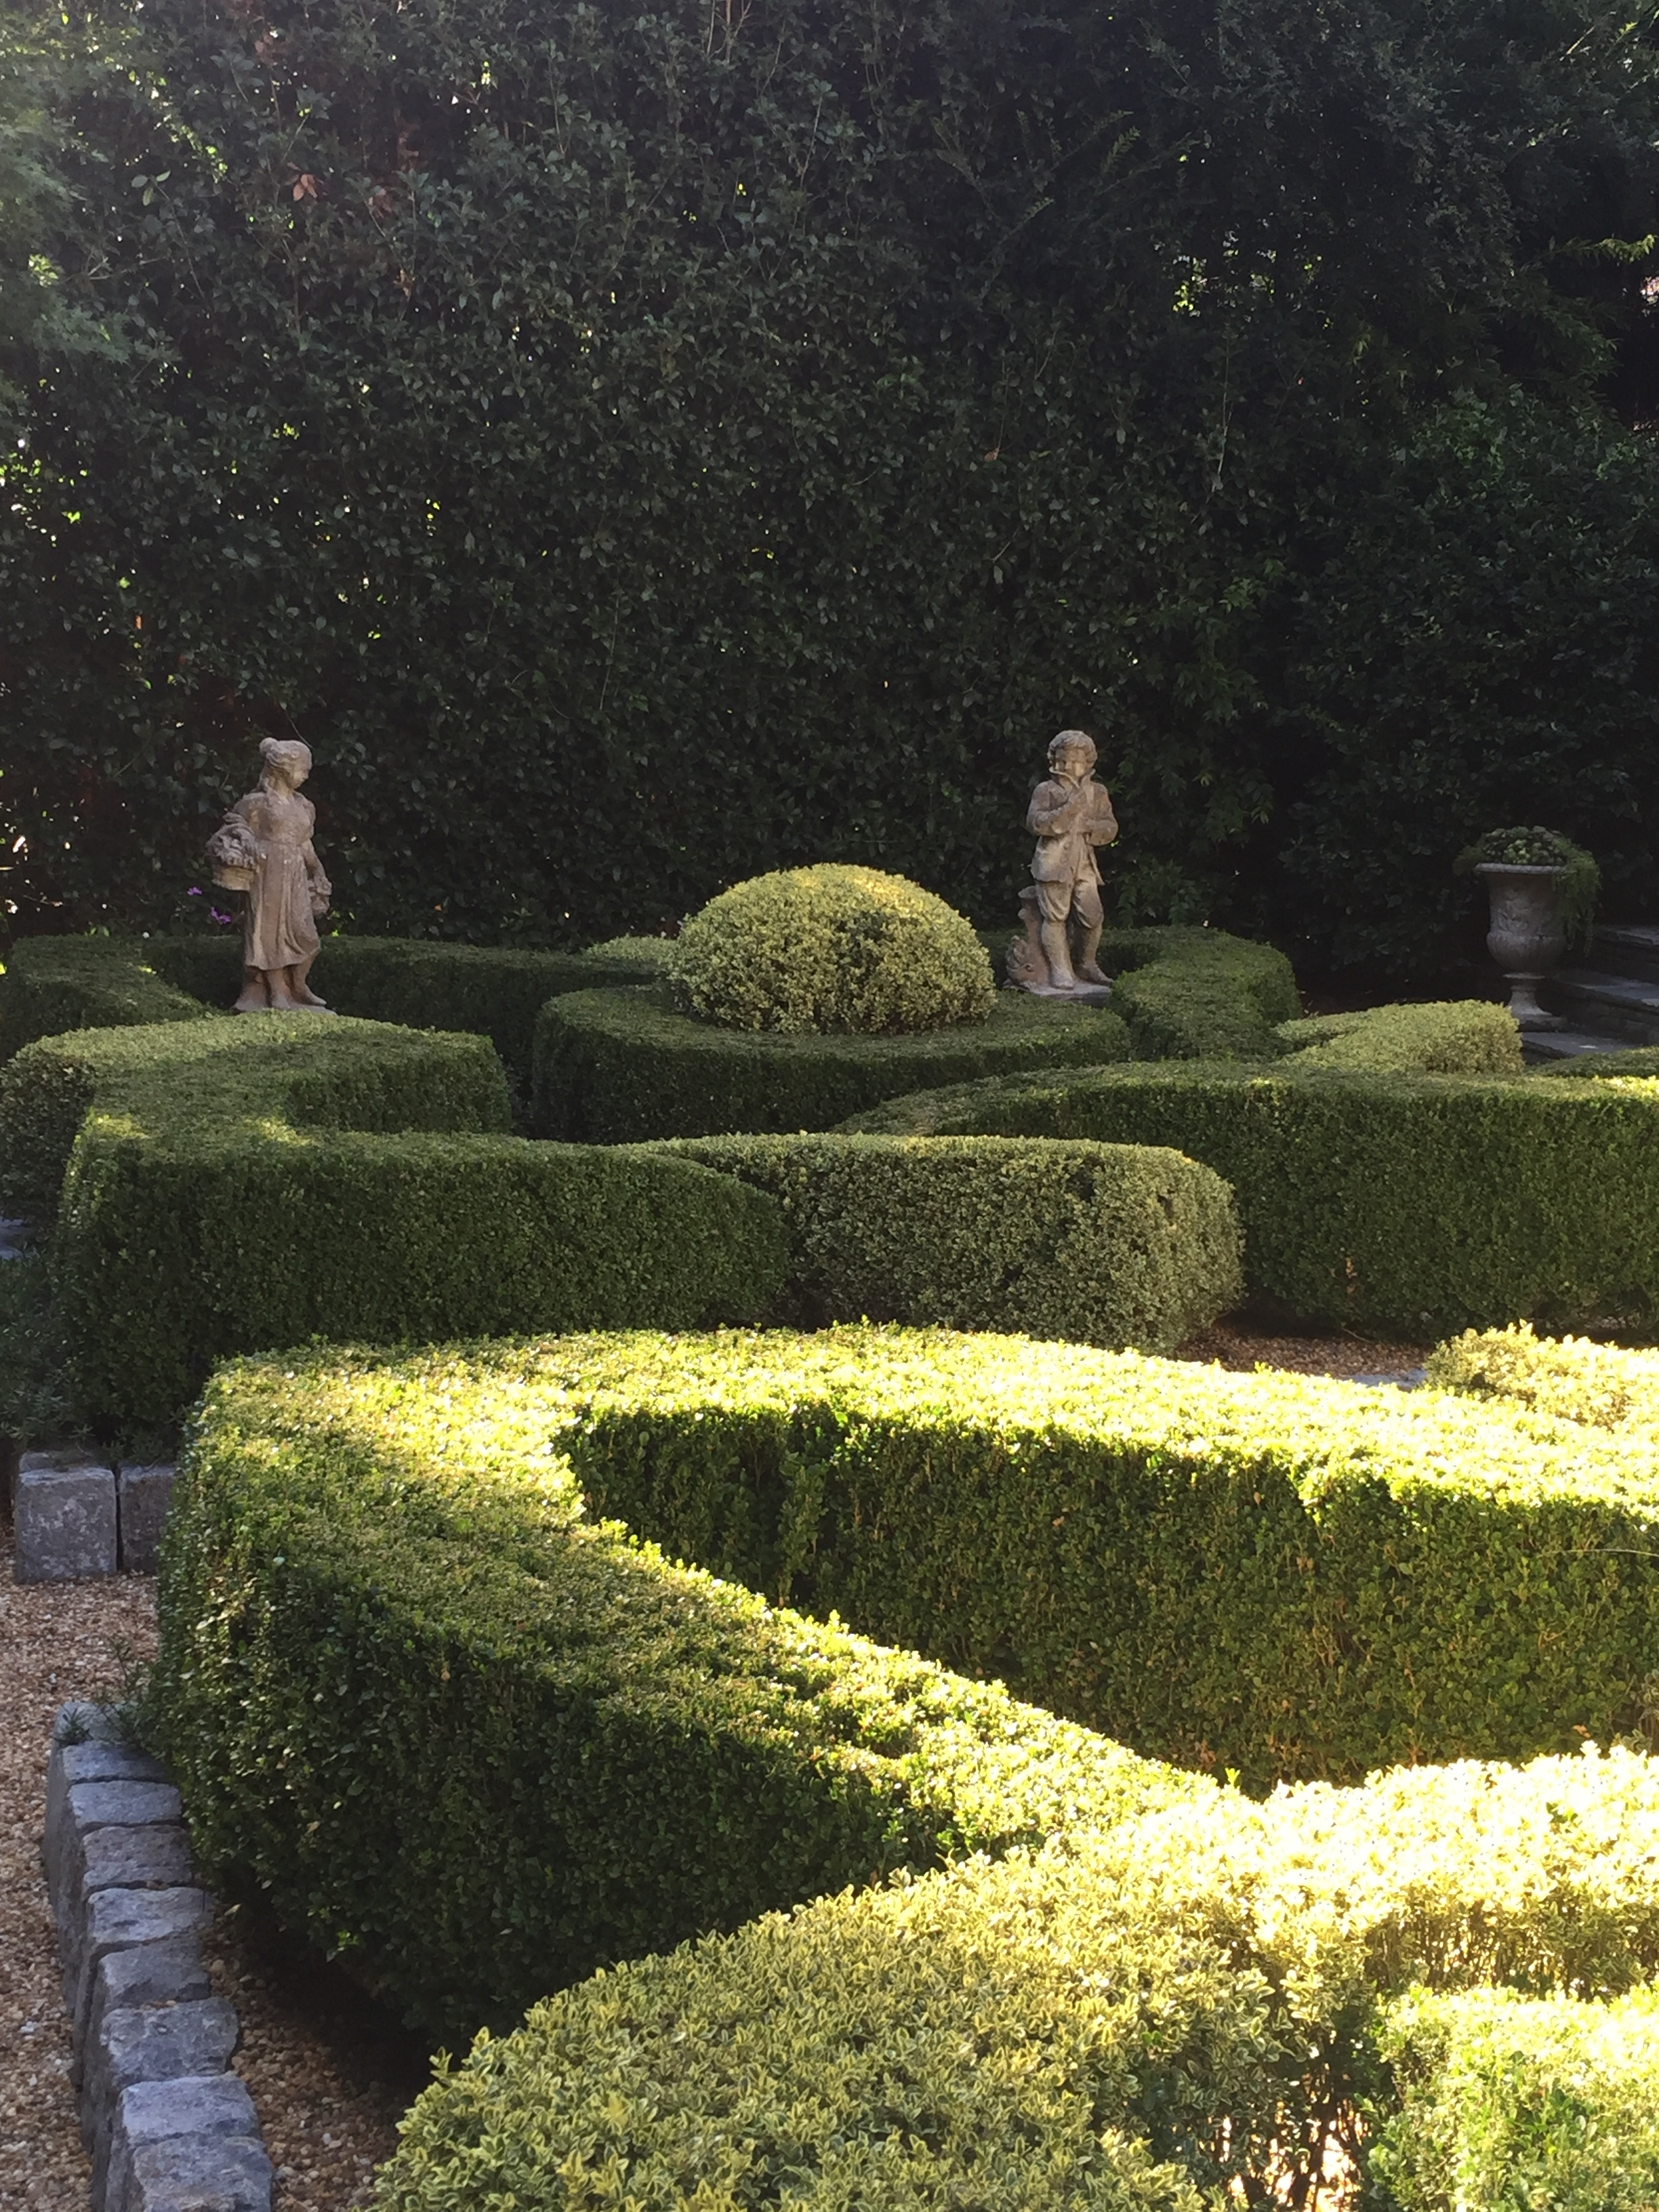 One very small garden went for formal, a knot garden.